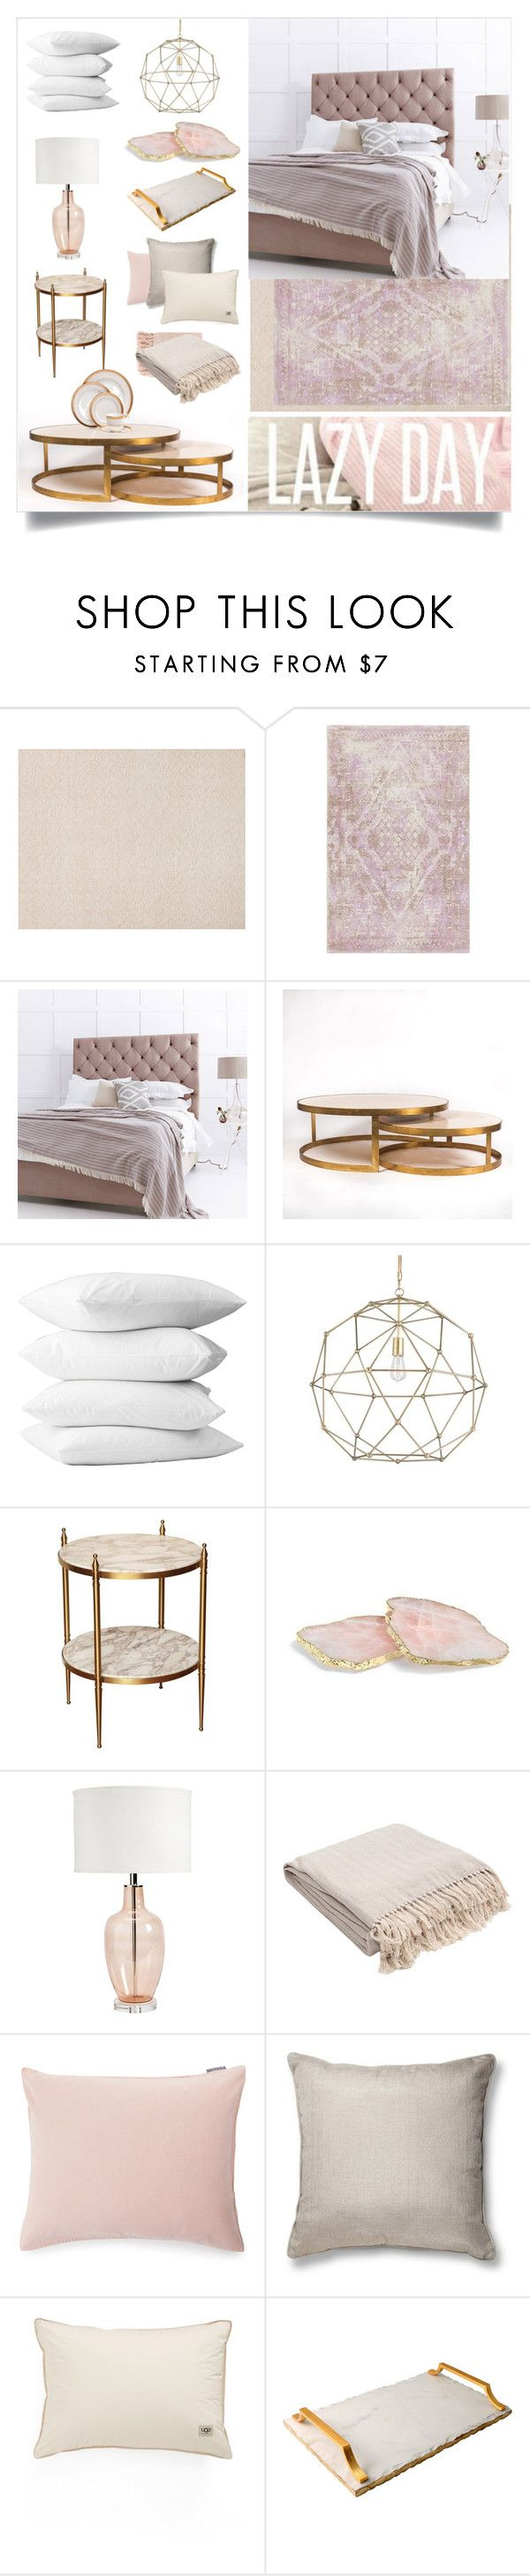 """Lazy day"" by slavulienka on Polyvore featuring interior, interiors, interior design, home, home decor, interior decorating, ANNA by RabLabs, Ballard Designs, Jaipur and Lexington"